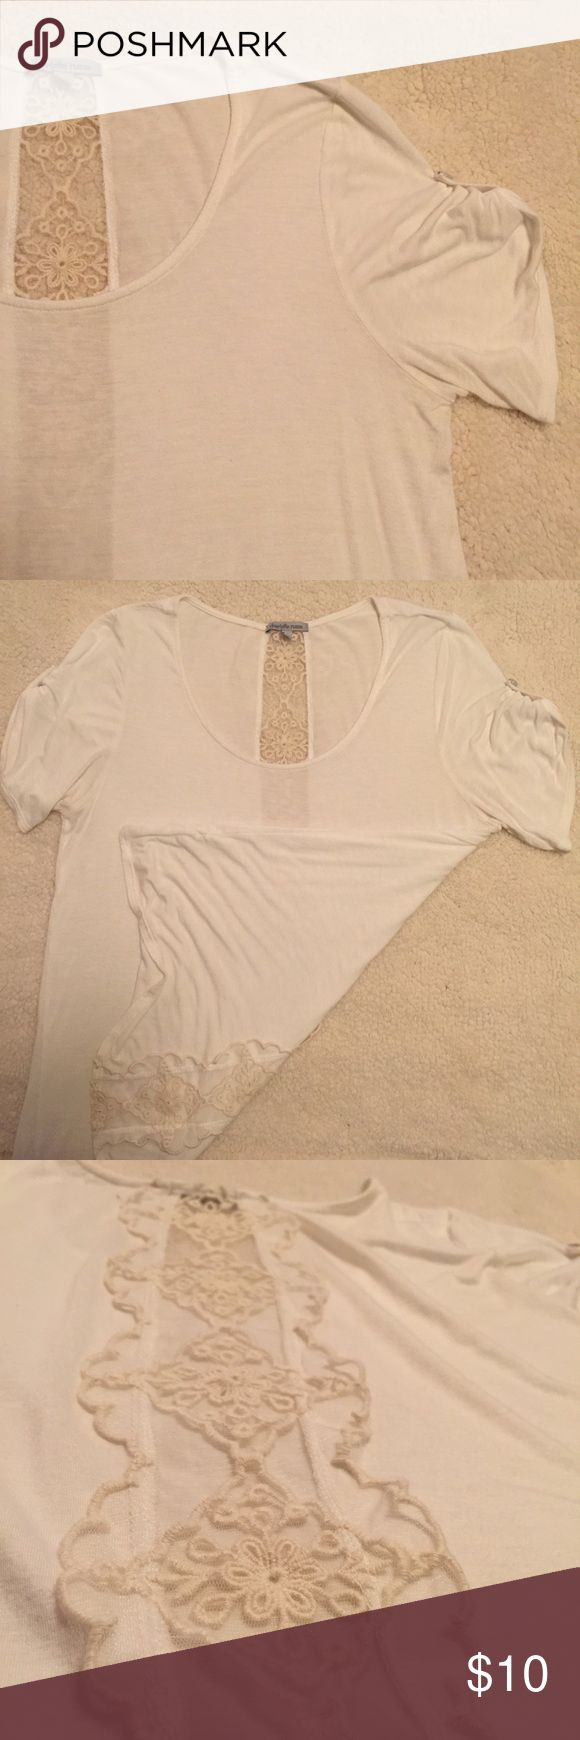 Charlotte Russe White Tee With Lace Inset Only worn once or twice! This top is quite long and a bit sheer. Has a beautiful lace inset running down the back. No fading or pilling! Charlotte Russe Tops Tees - Short Sleeve